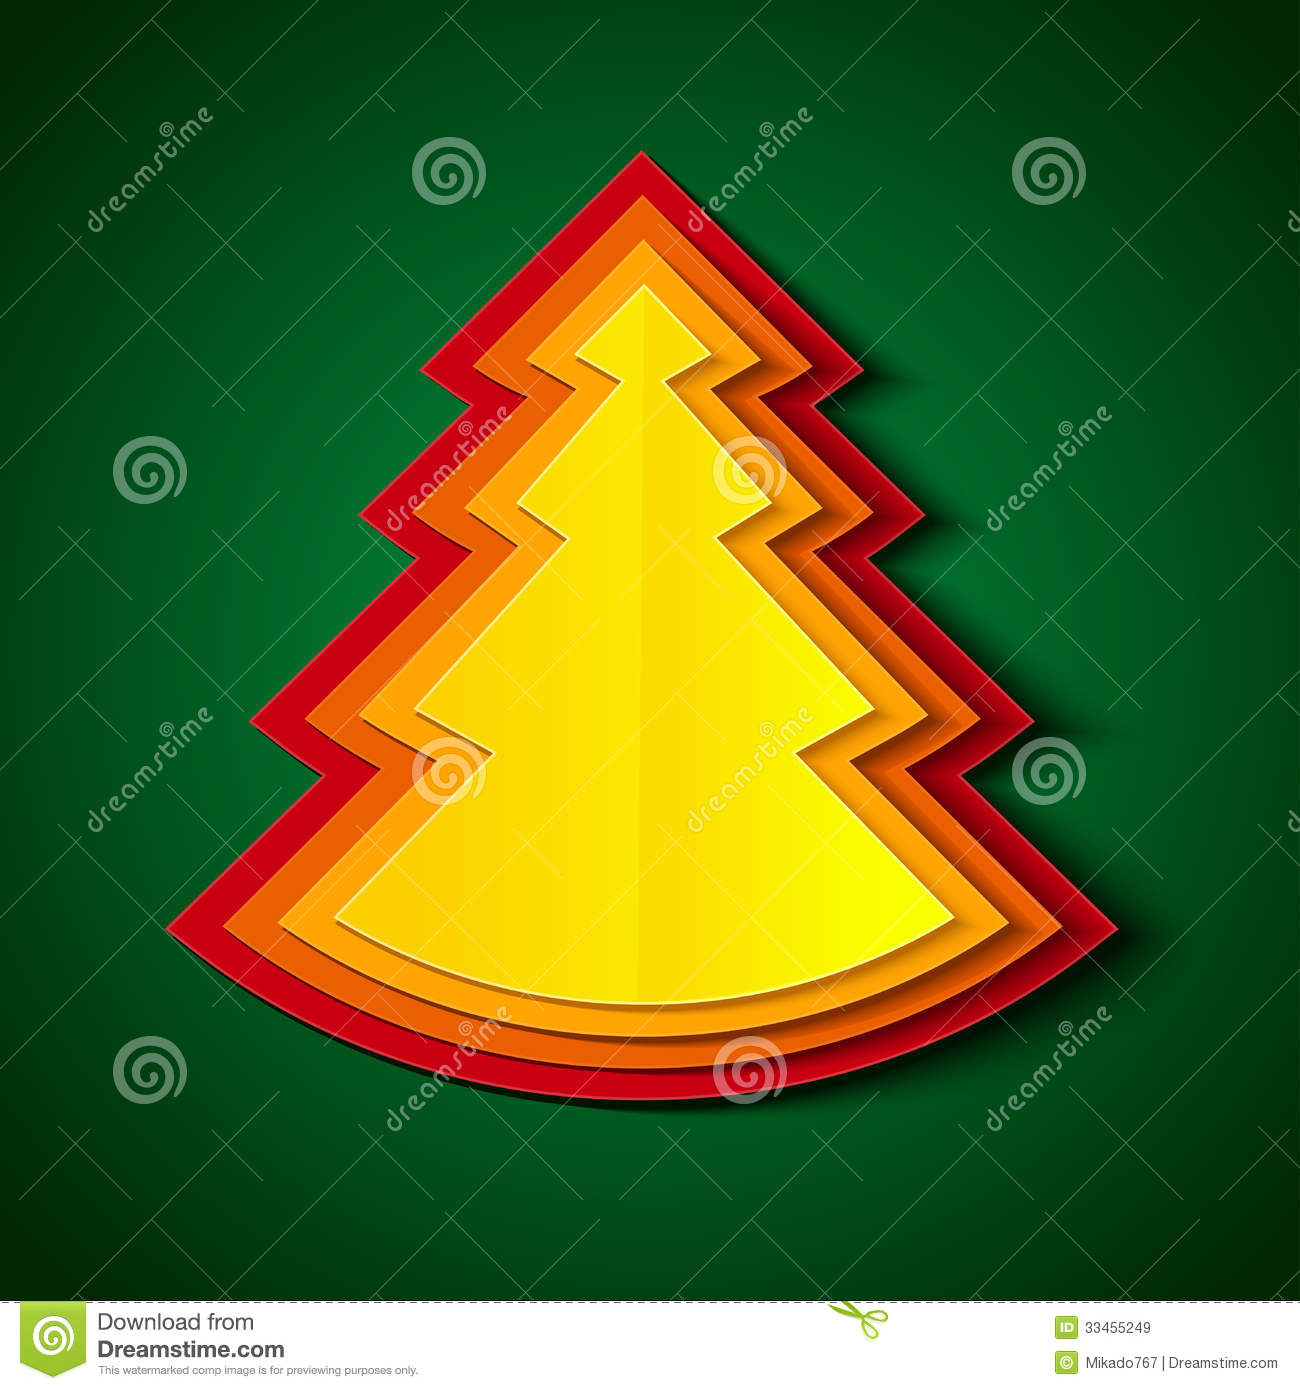 Paper christmas tree royalty free stock images image for Red and yellow christmas tree